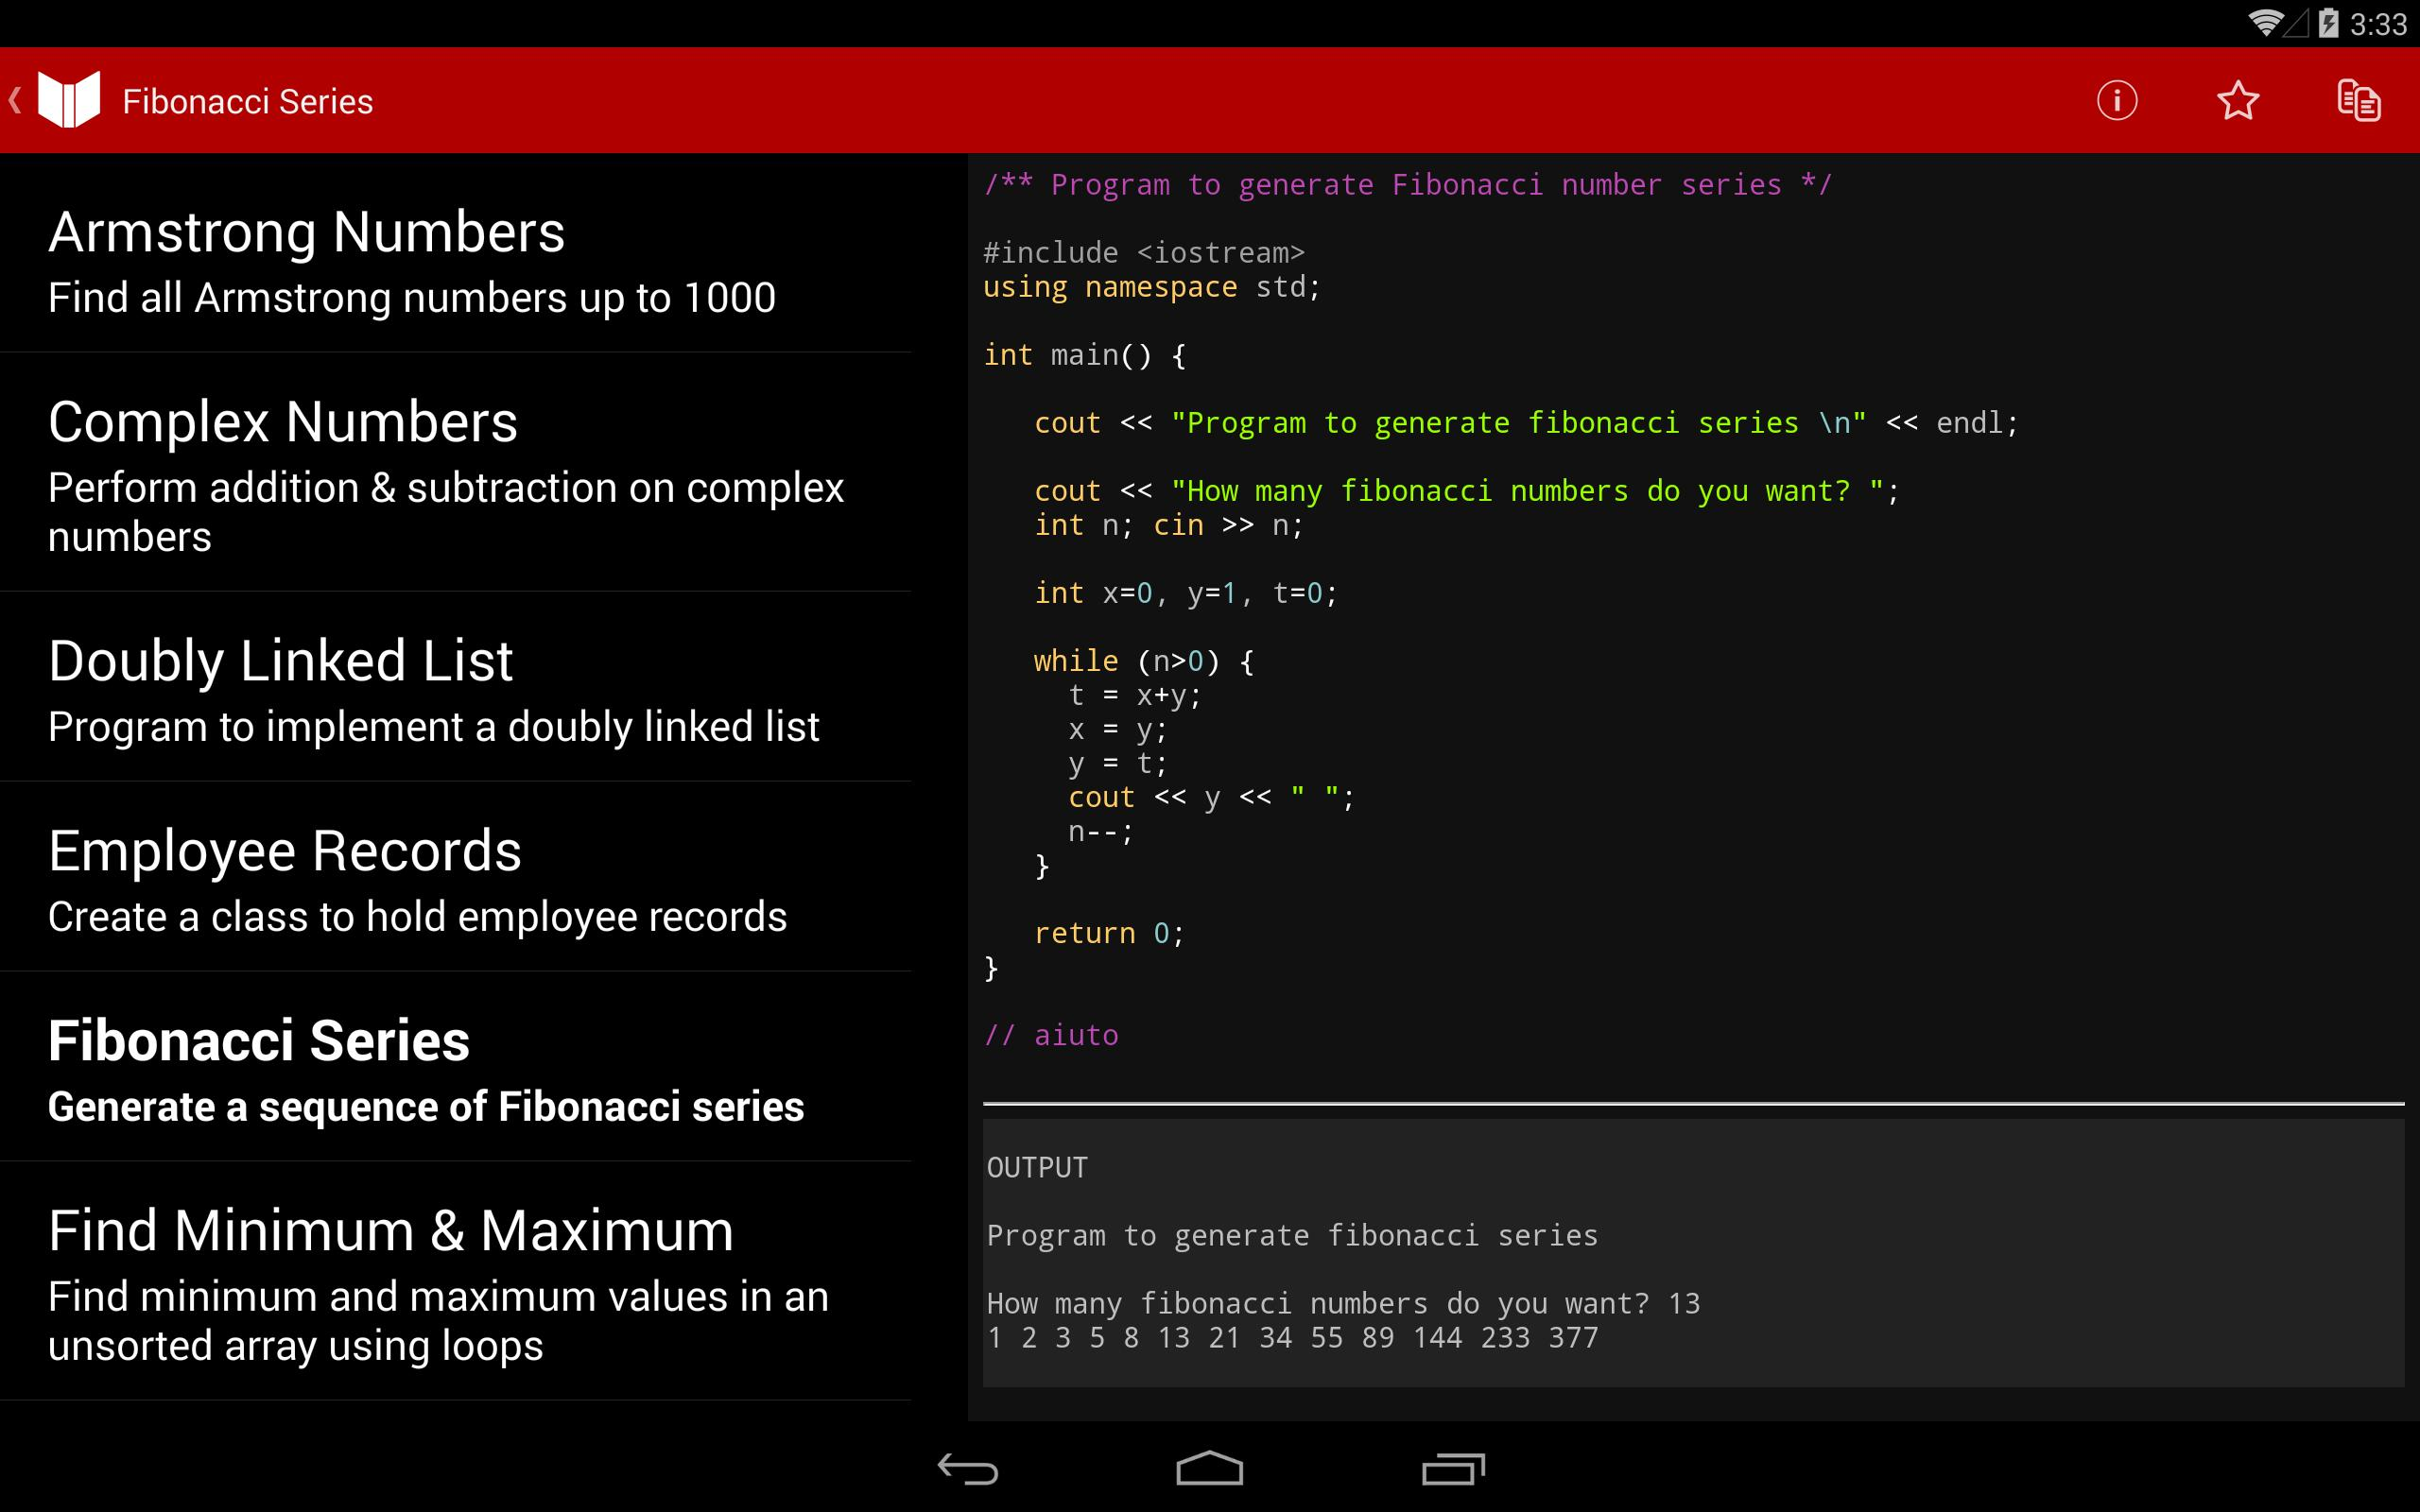 C++, Java Programs & Reference for Android - APK Download